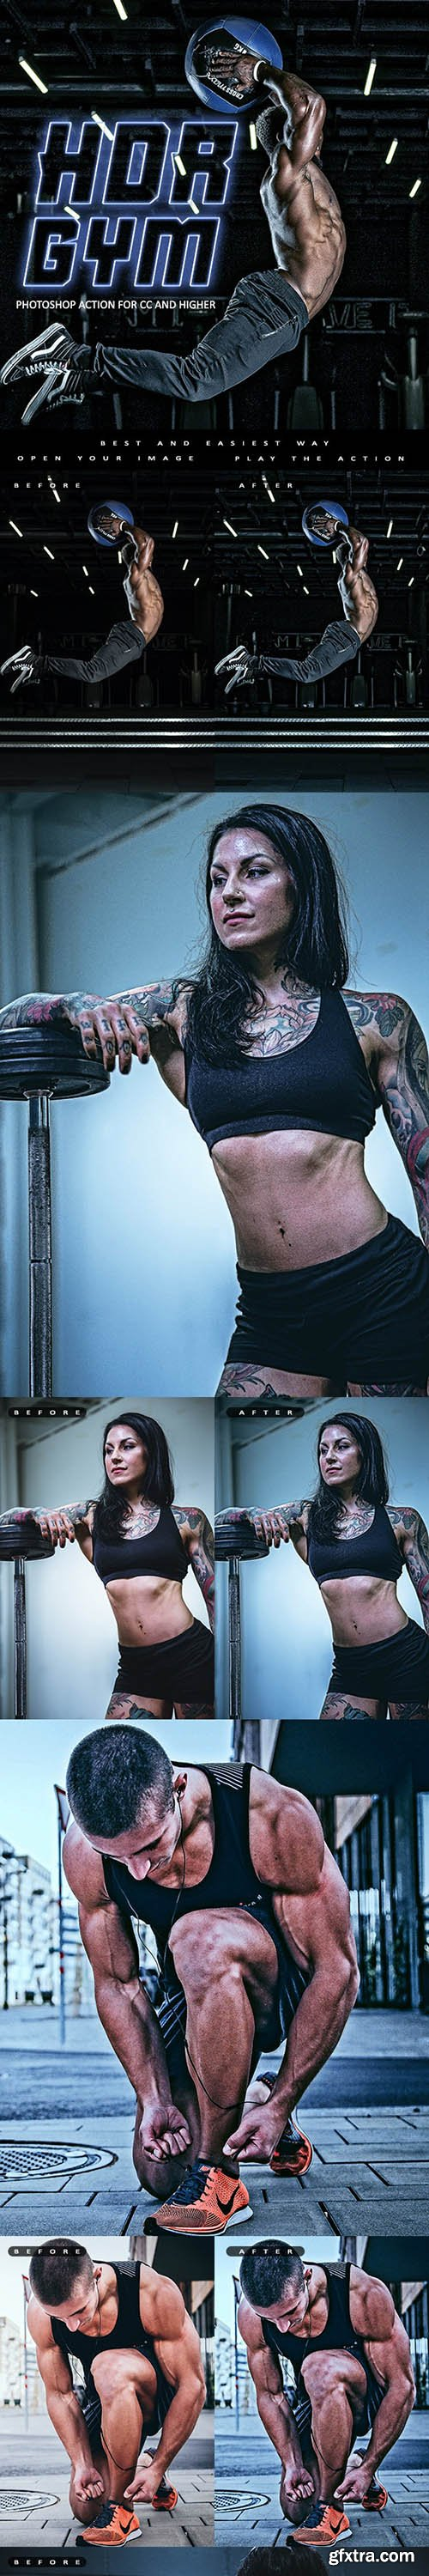 GraphicRiver - HDR GYM - Photoshop Action 29927487